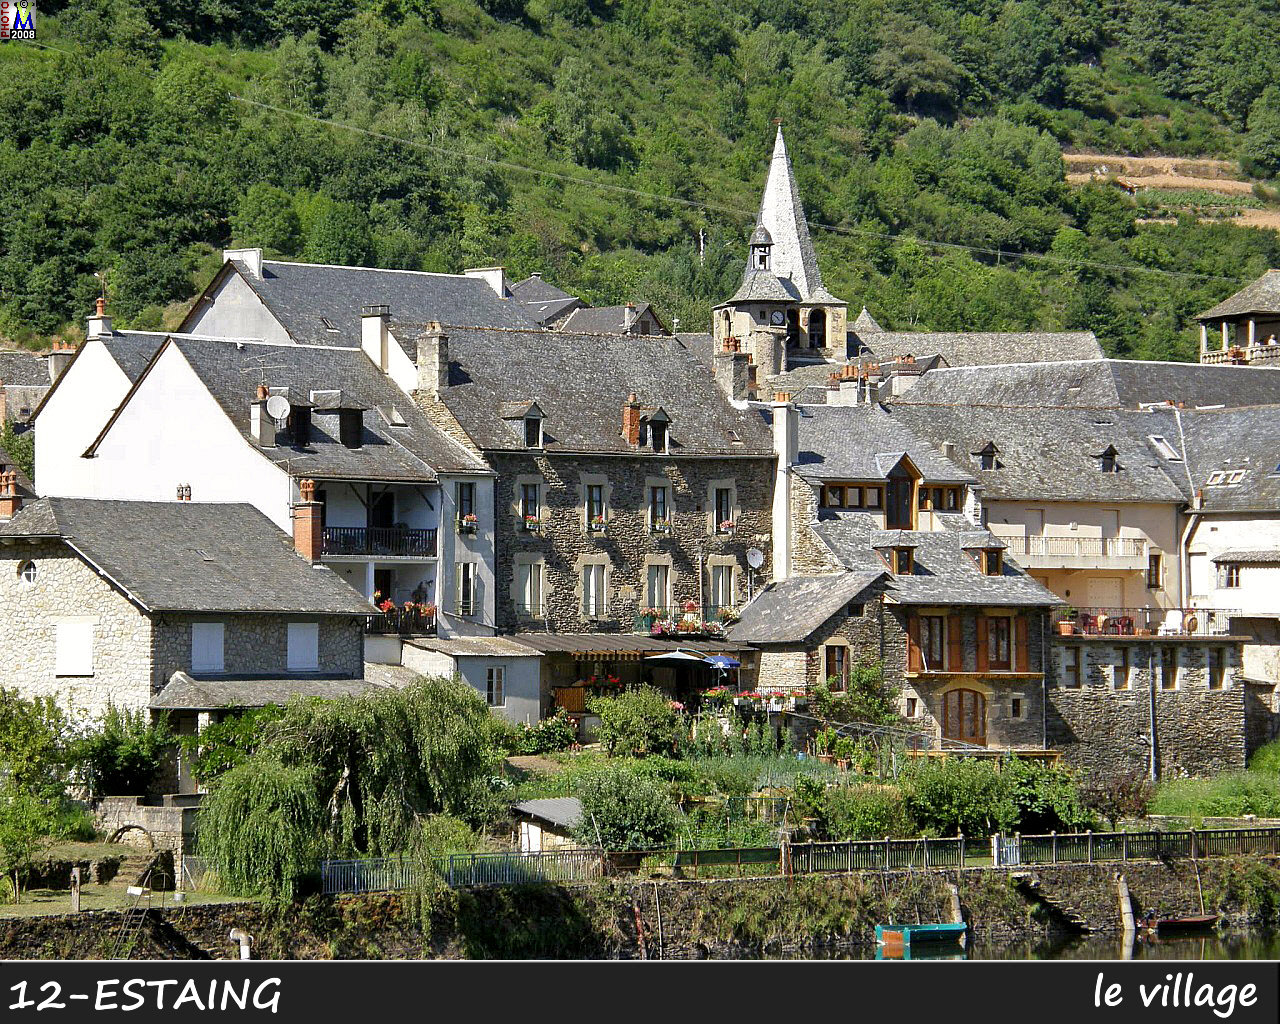 12ESTAING_village_104.jpg